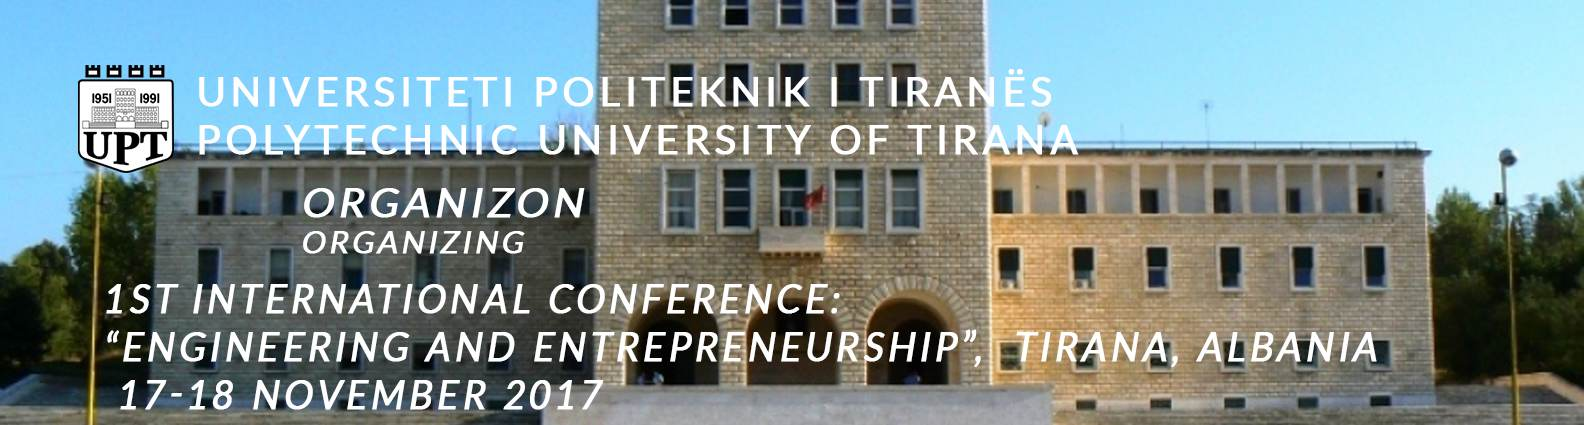 "International Conference: ""Engineering and Entrepreneurship"" Tirana, 17-18 Nov 2017"